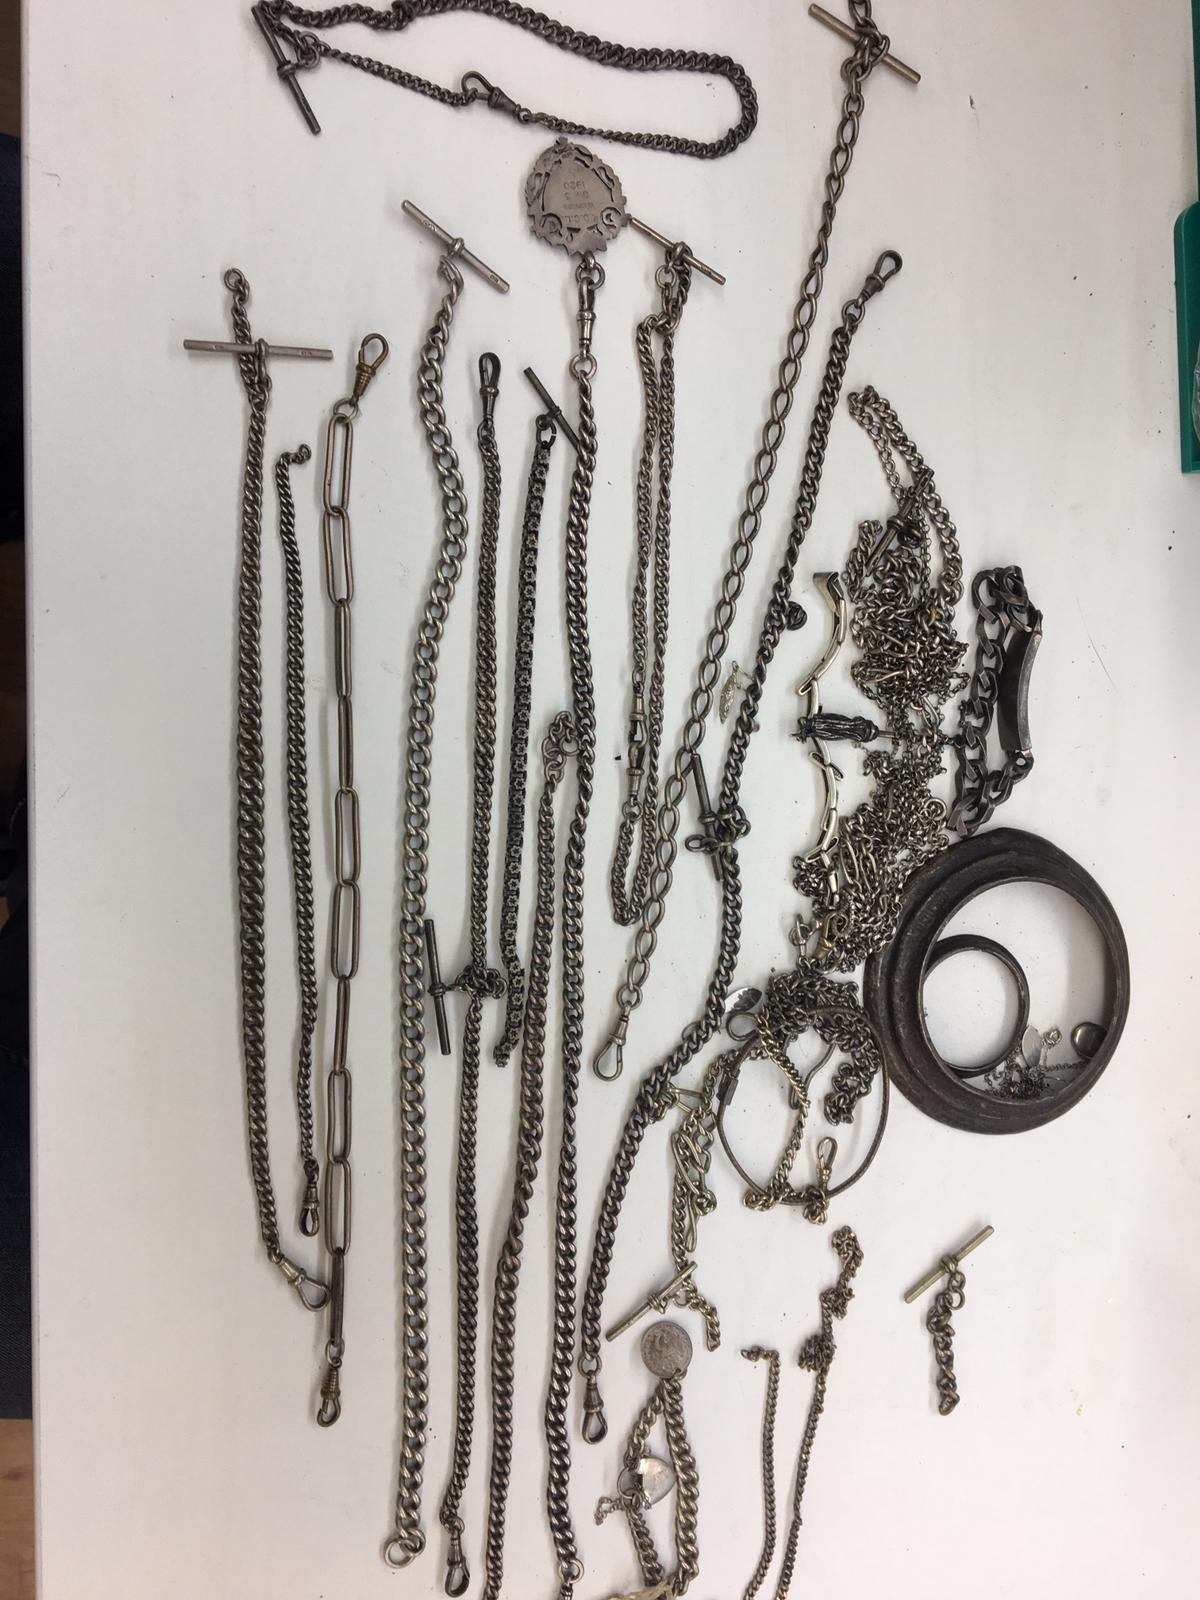 Lot 16 - Large qty of silver Albert chains and bracelets, total weight 650 grams.